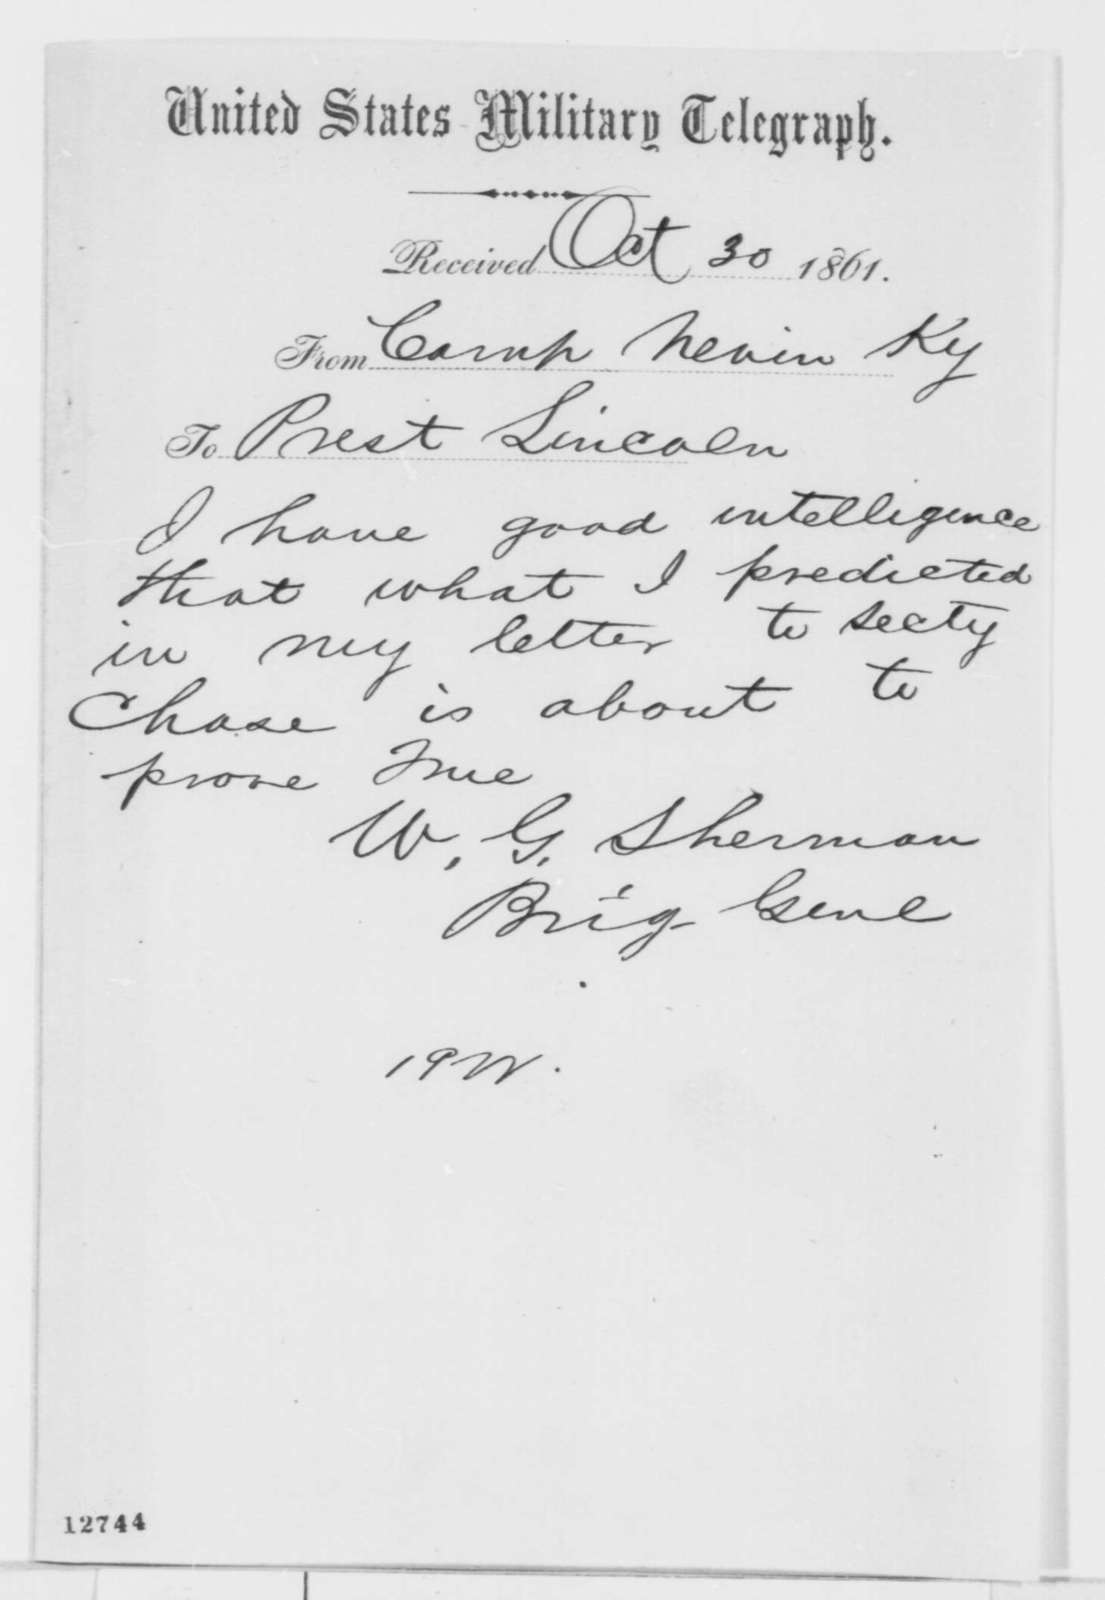 William T. Sherman to Abraham Lincoln, Wednesday, October 30, 1861  (Telegram regarding military affairs)